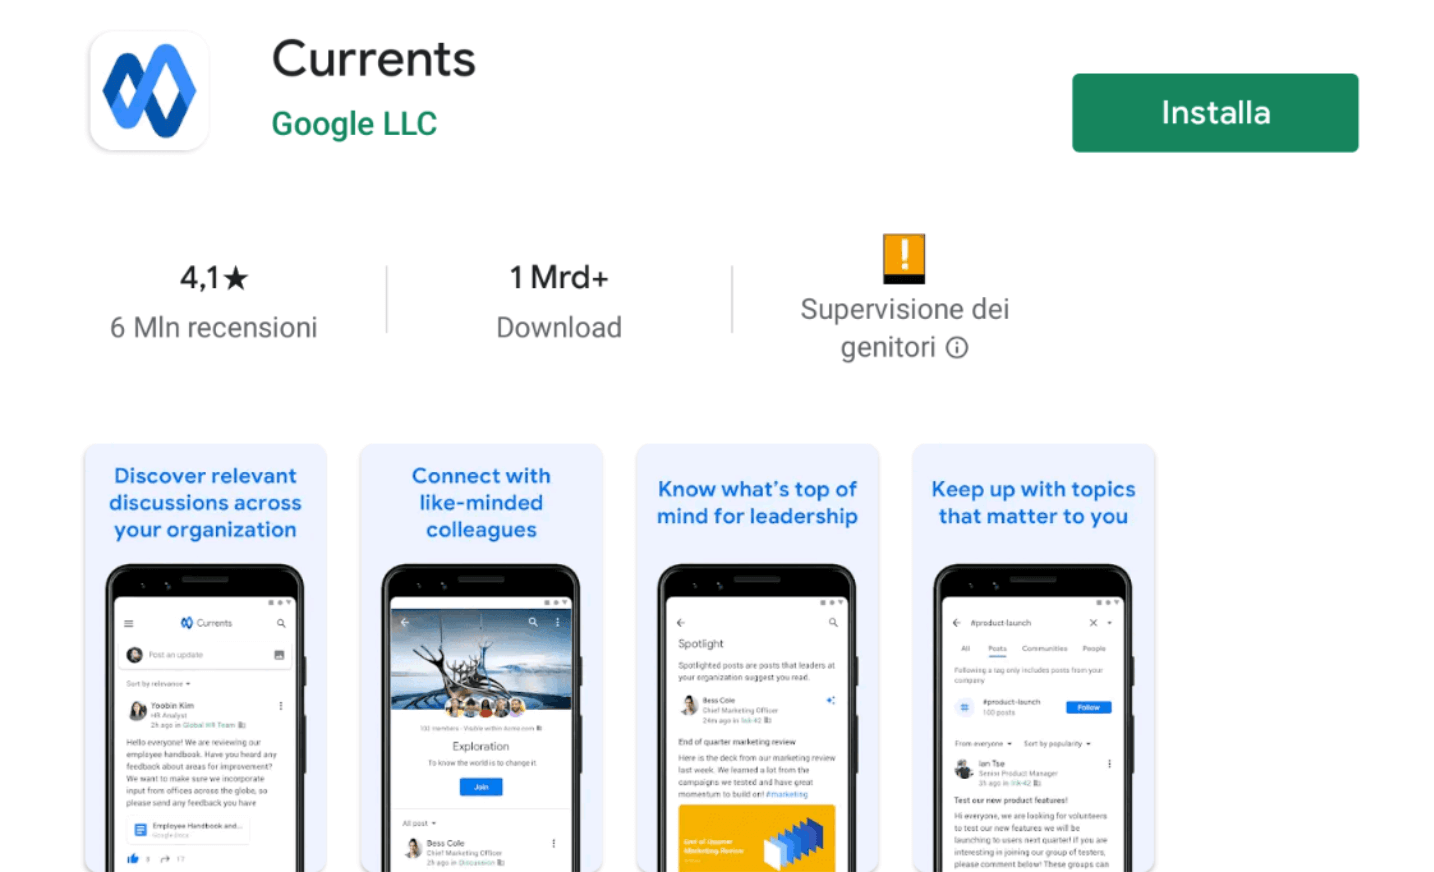 google-currents-play-store-1